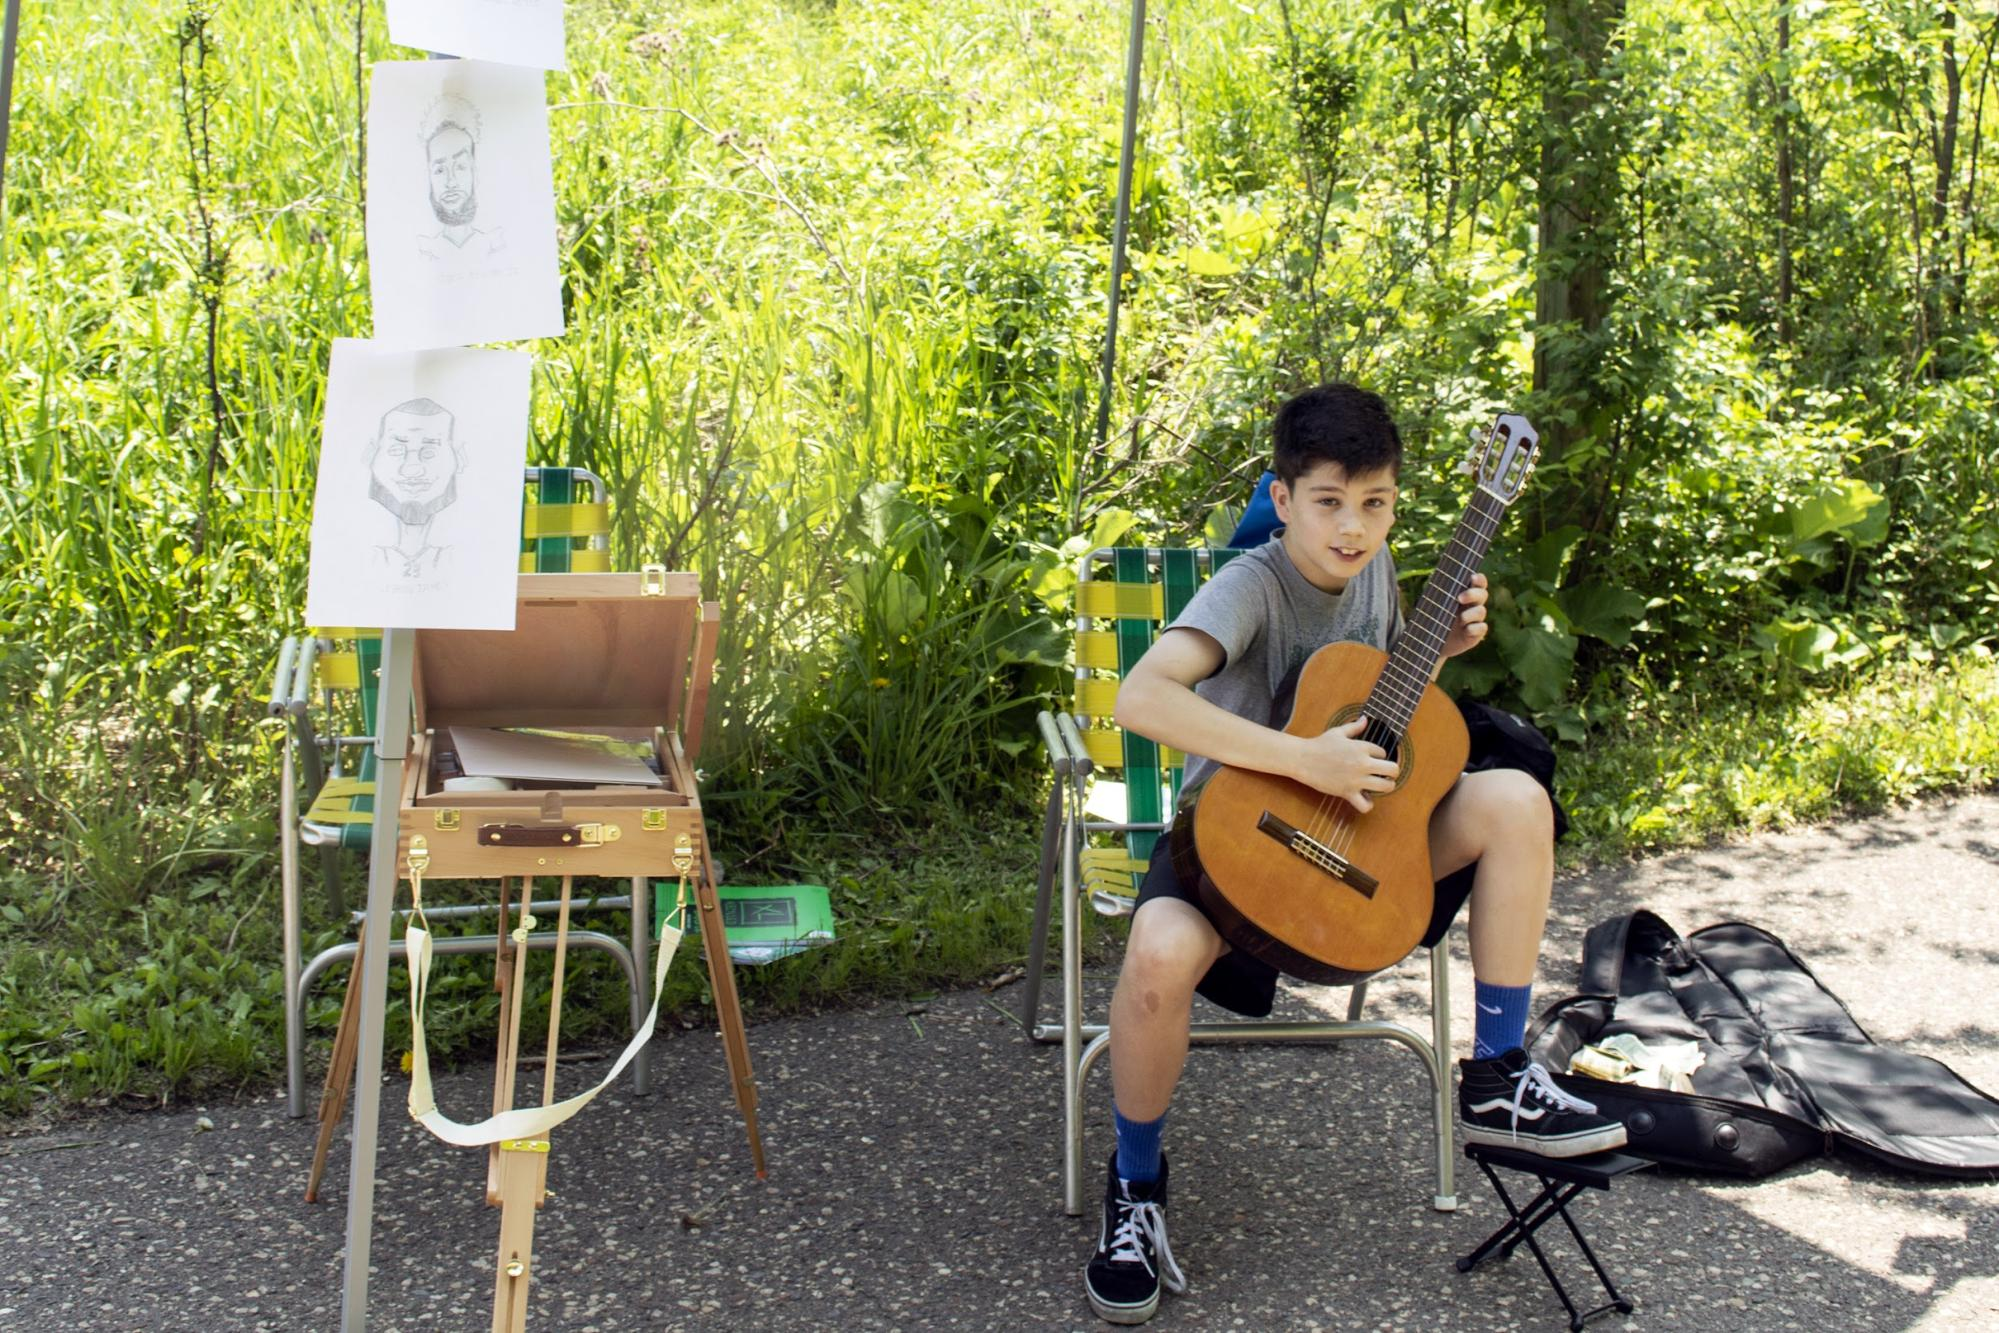 Henry Colin, an 11-year-old artist and musician, plays guitar at Art in the Hollow. Colin also drew caricatures at this year's event. (Mandy Hathaway / The Metropolitan)